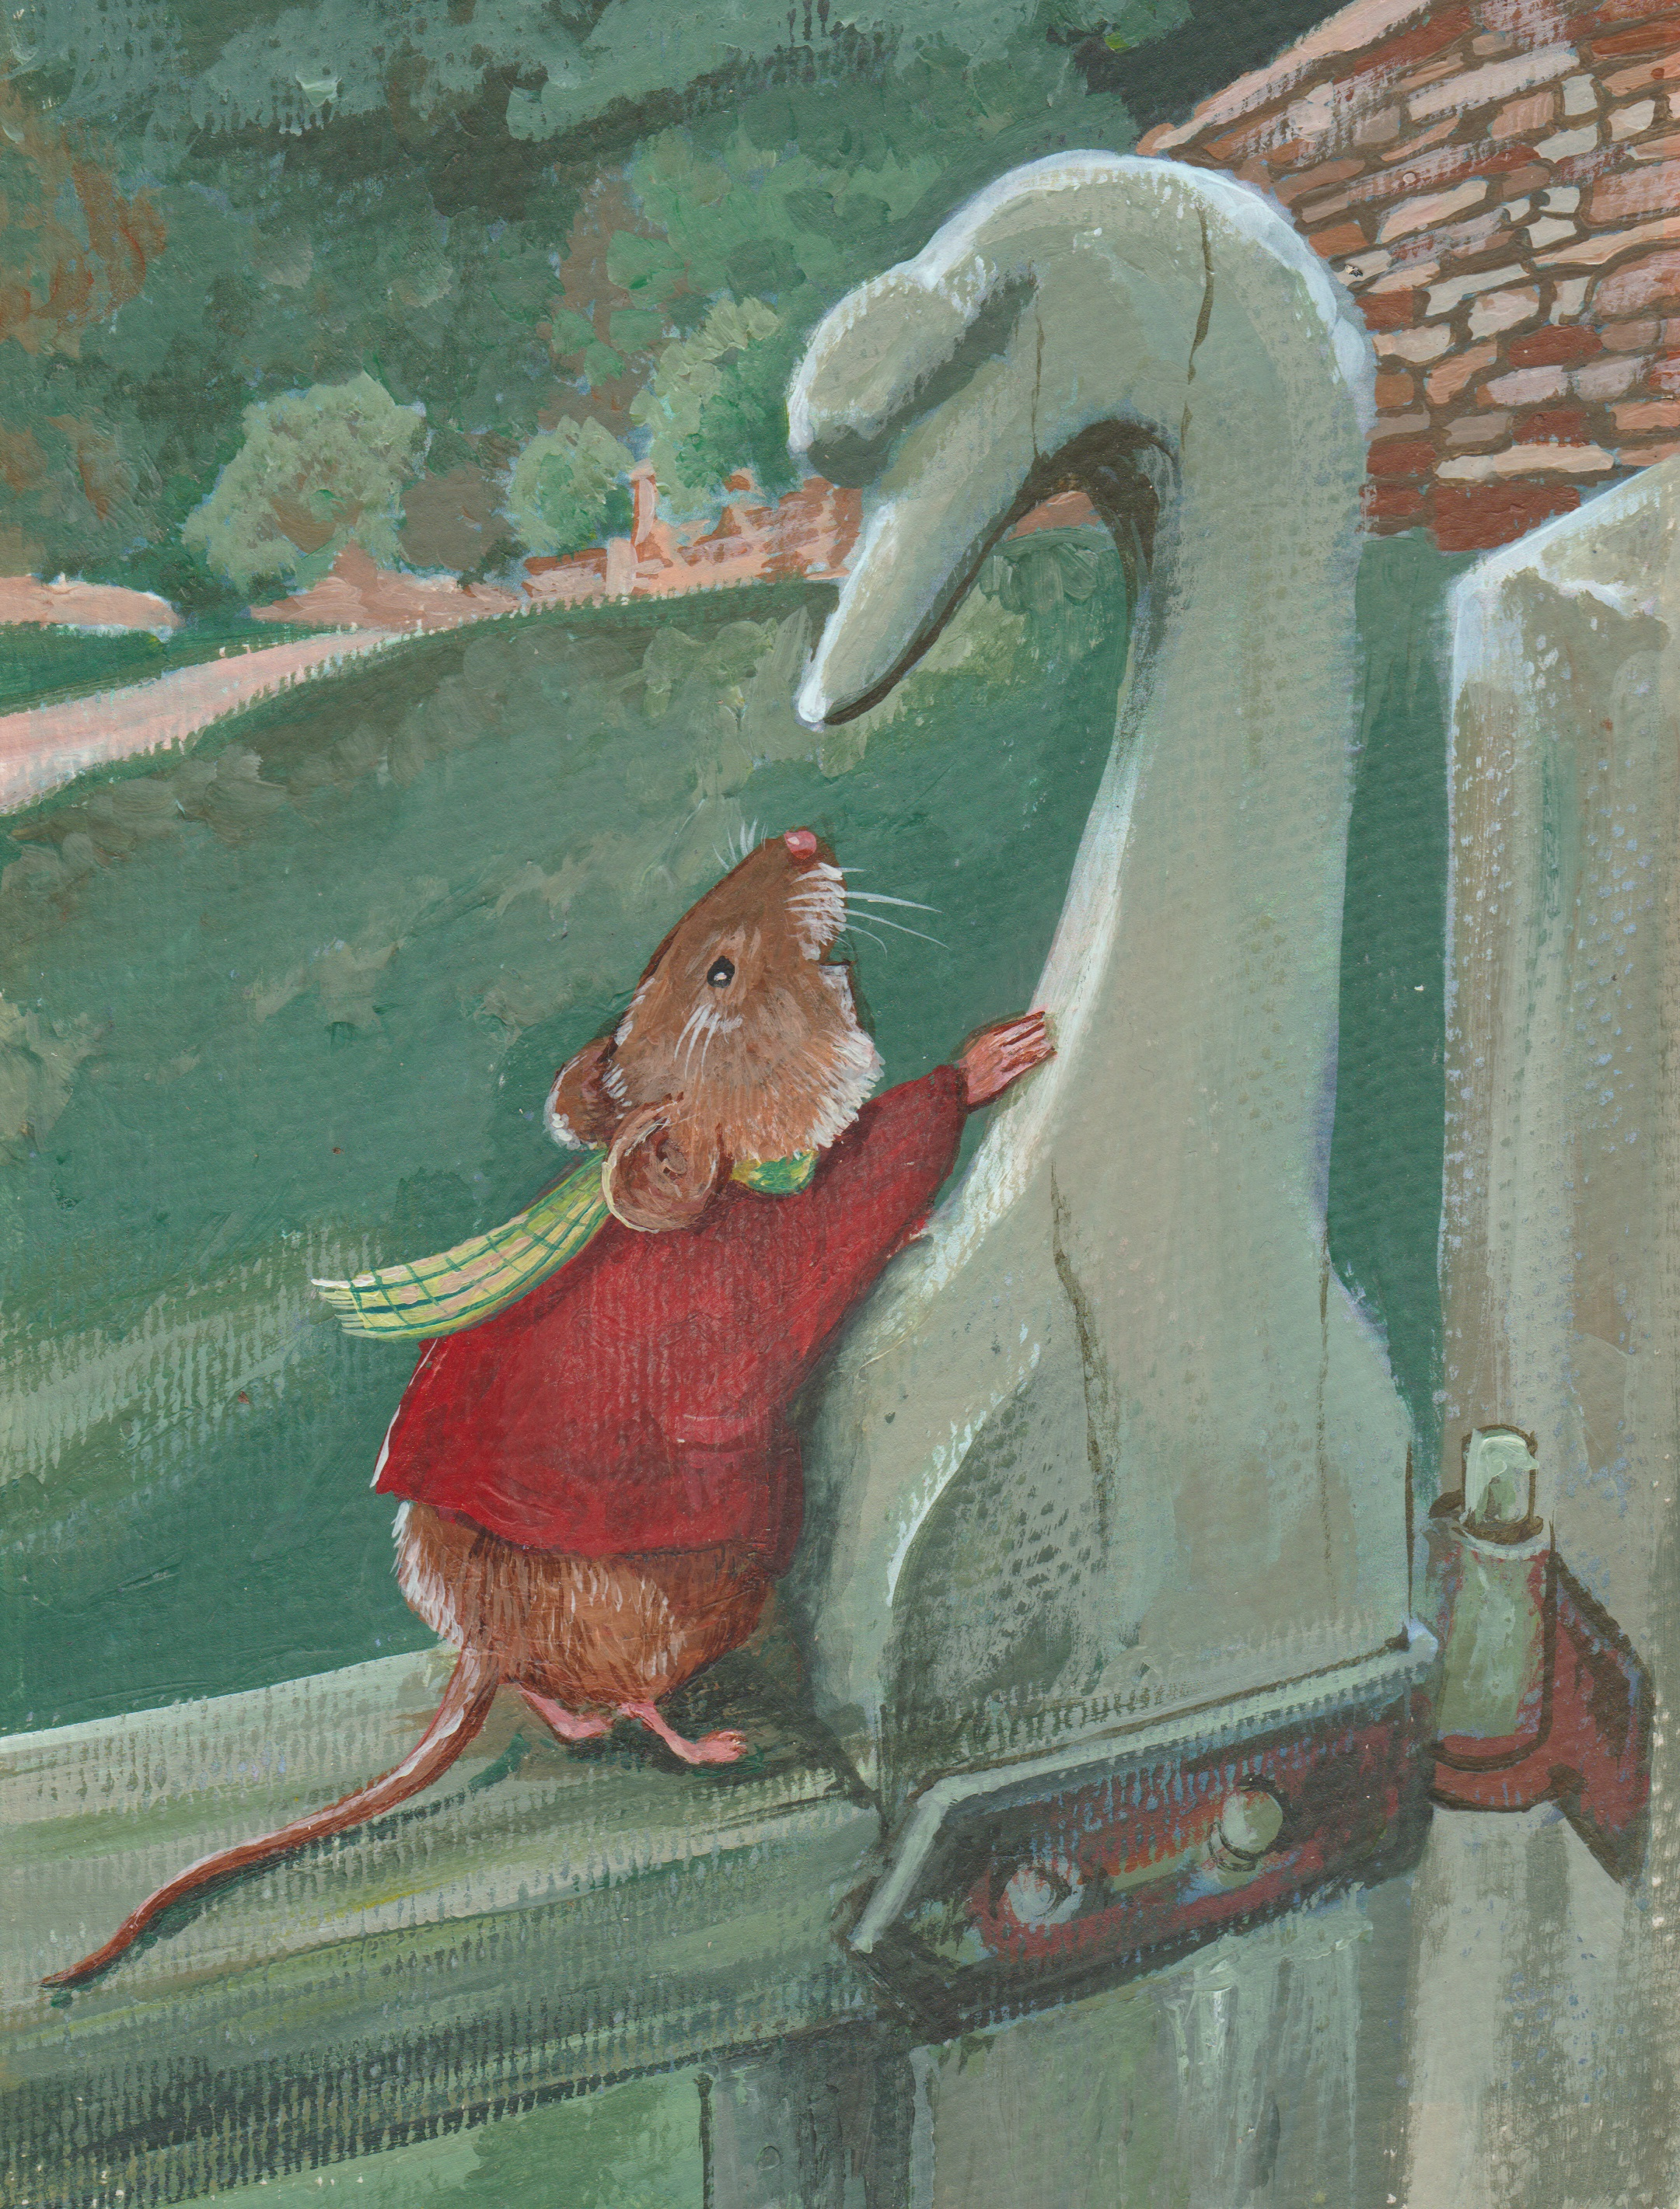 Mouse wearing red jacket talking to wooden swan-KBMorgan